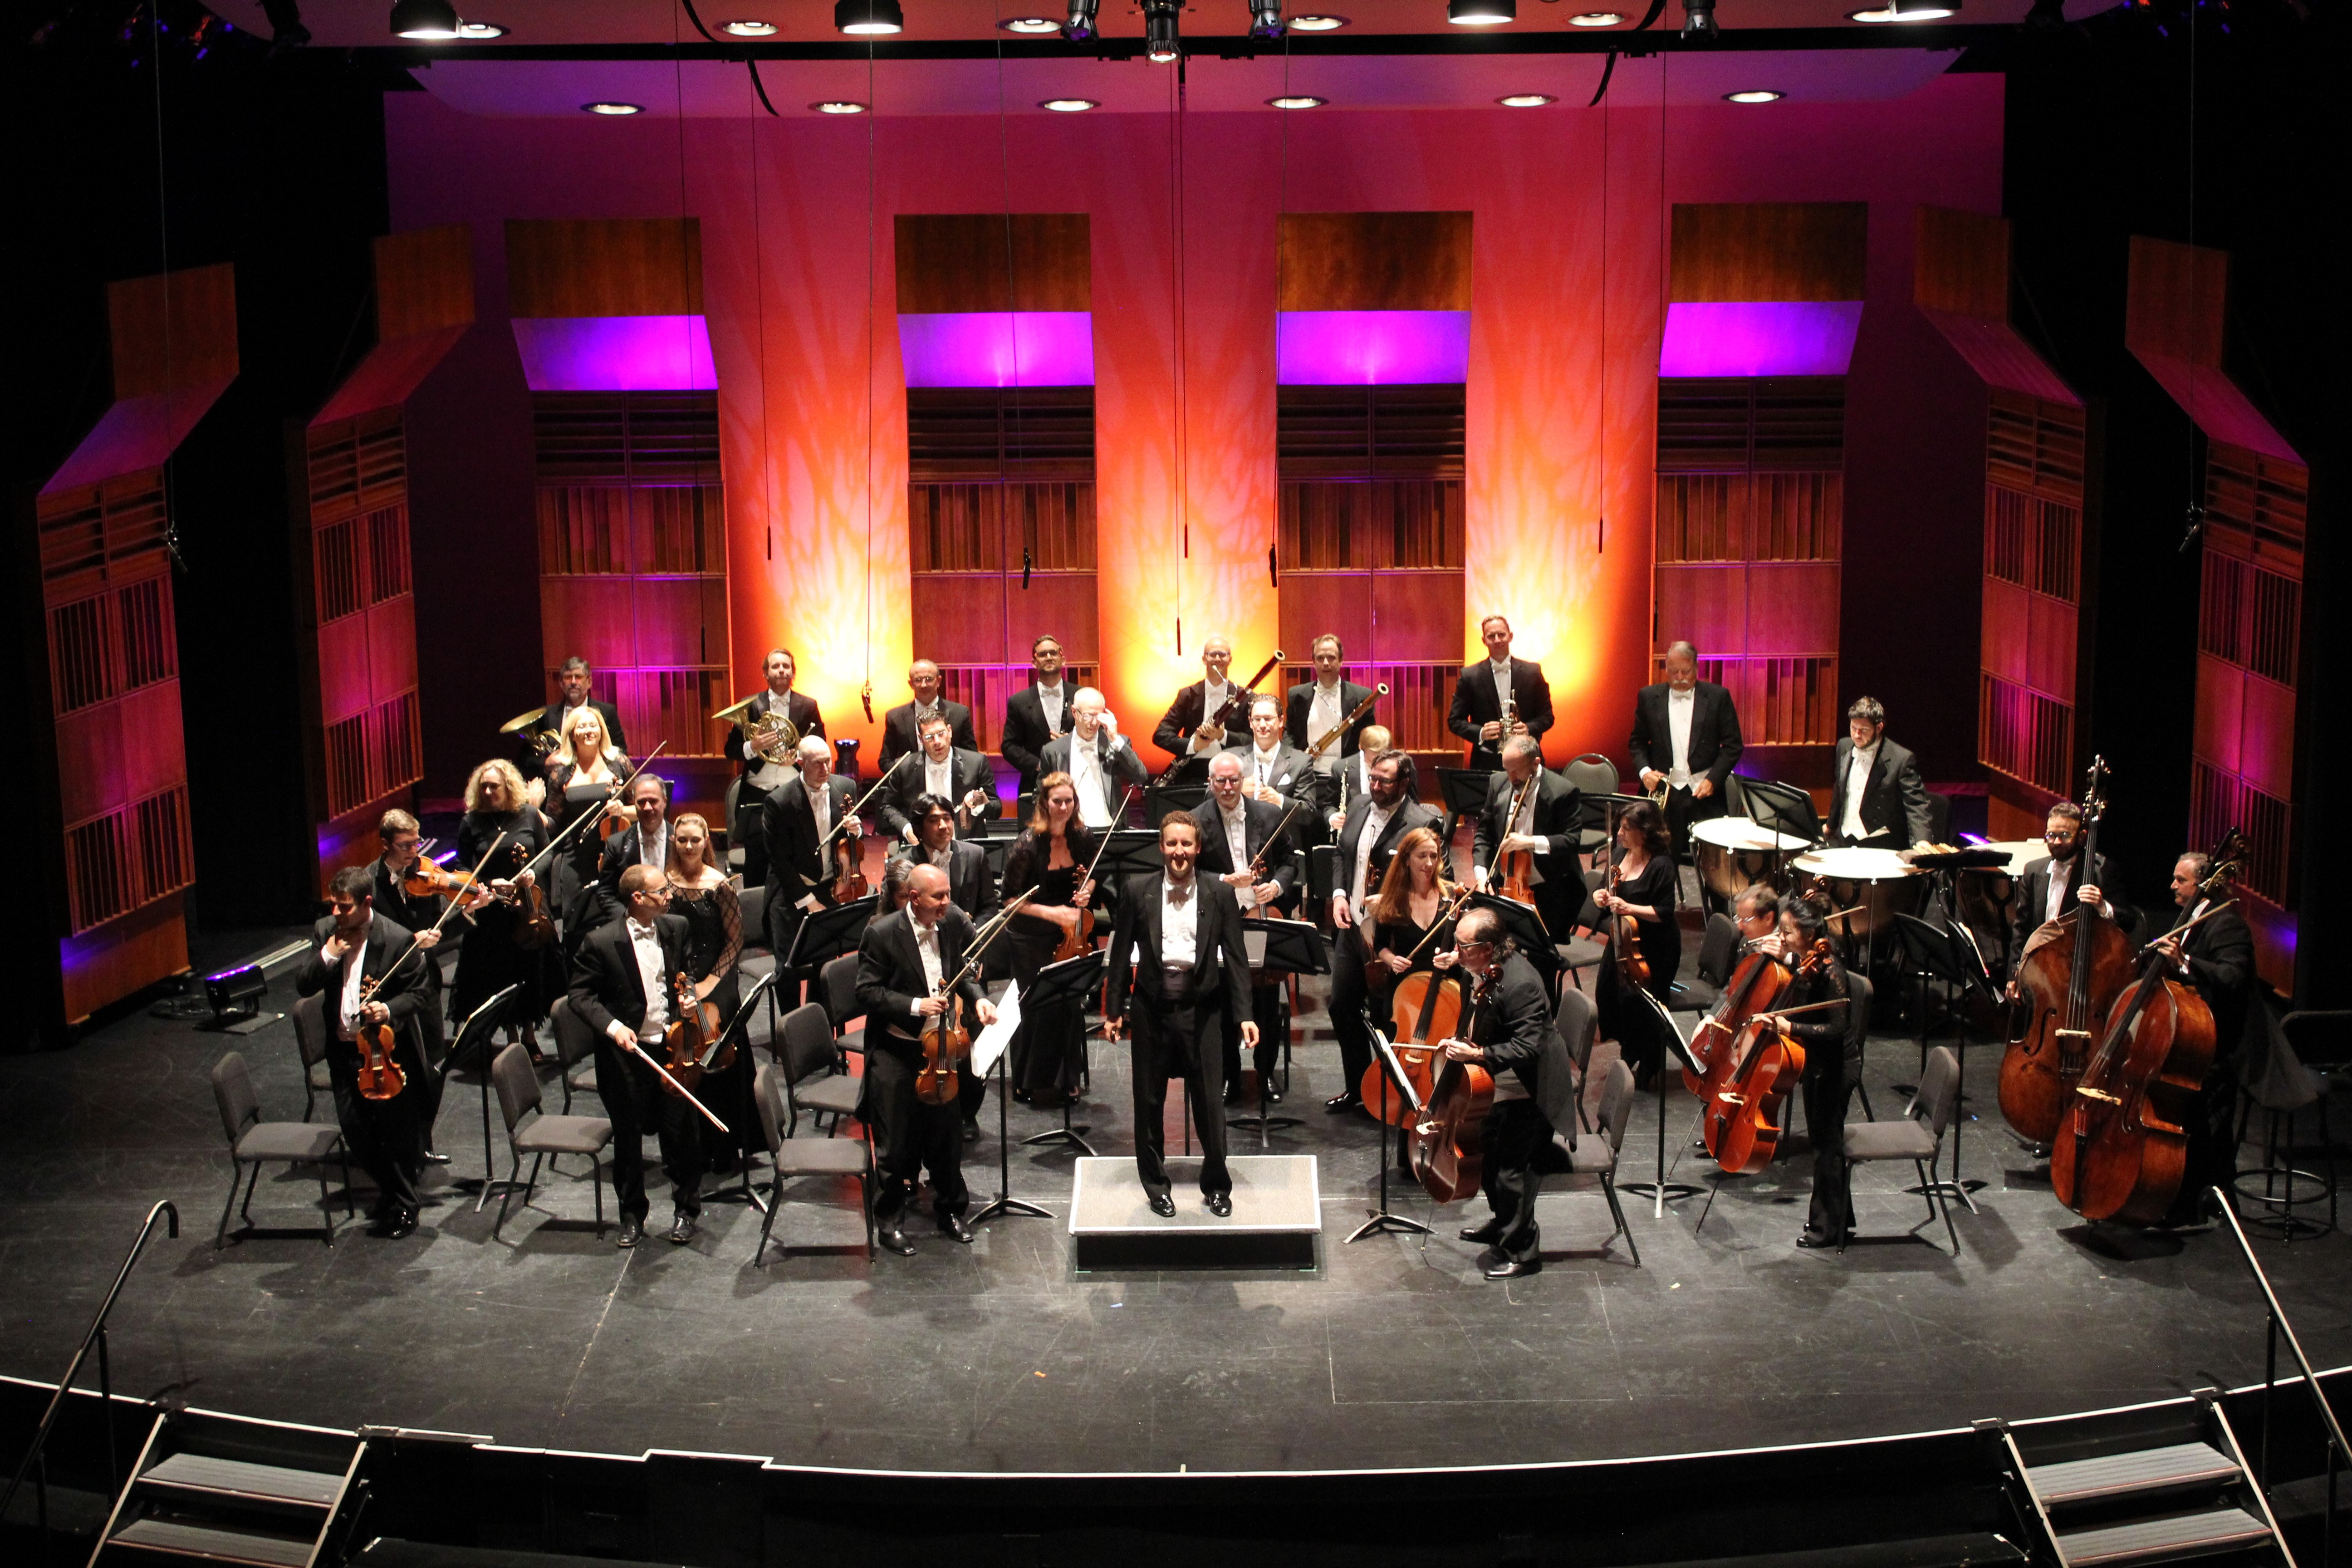 BWW Review: MAINLY MOZART FESTIVAL ORCHESTRA at The Balboa Theatre